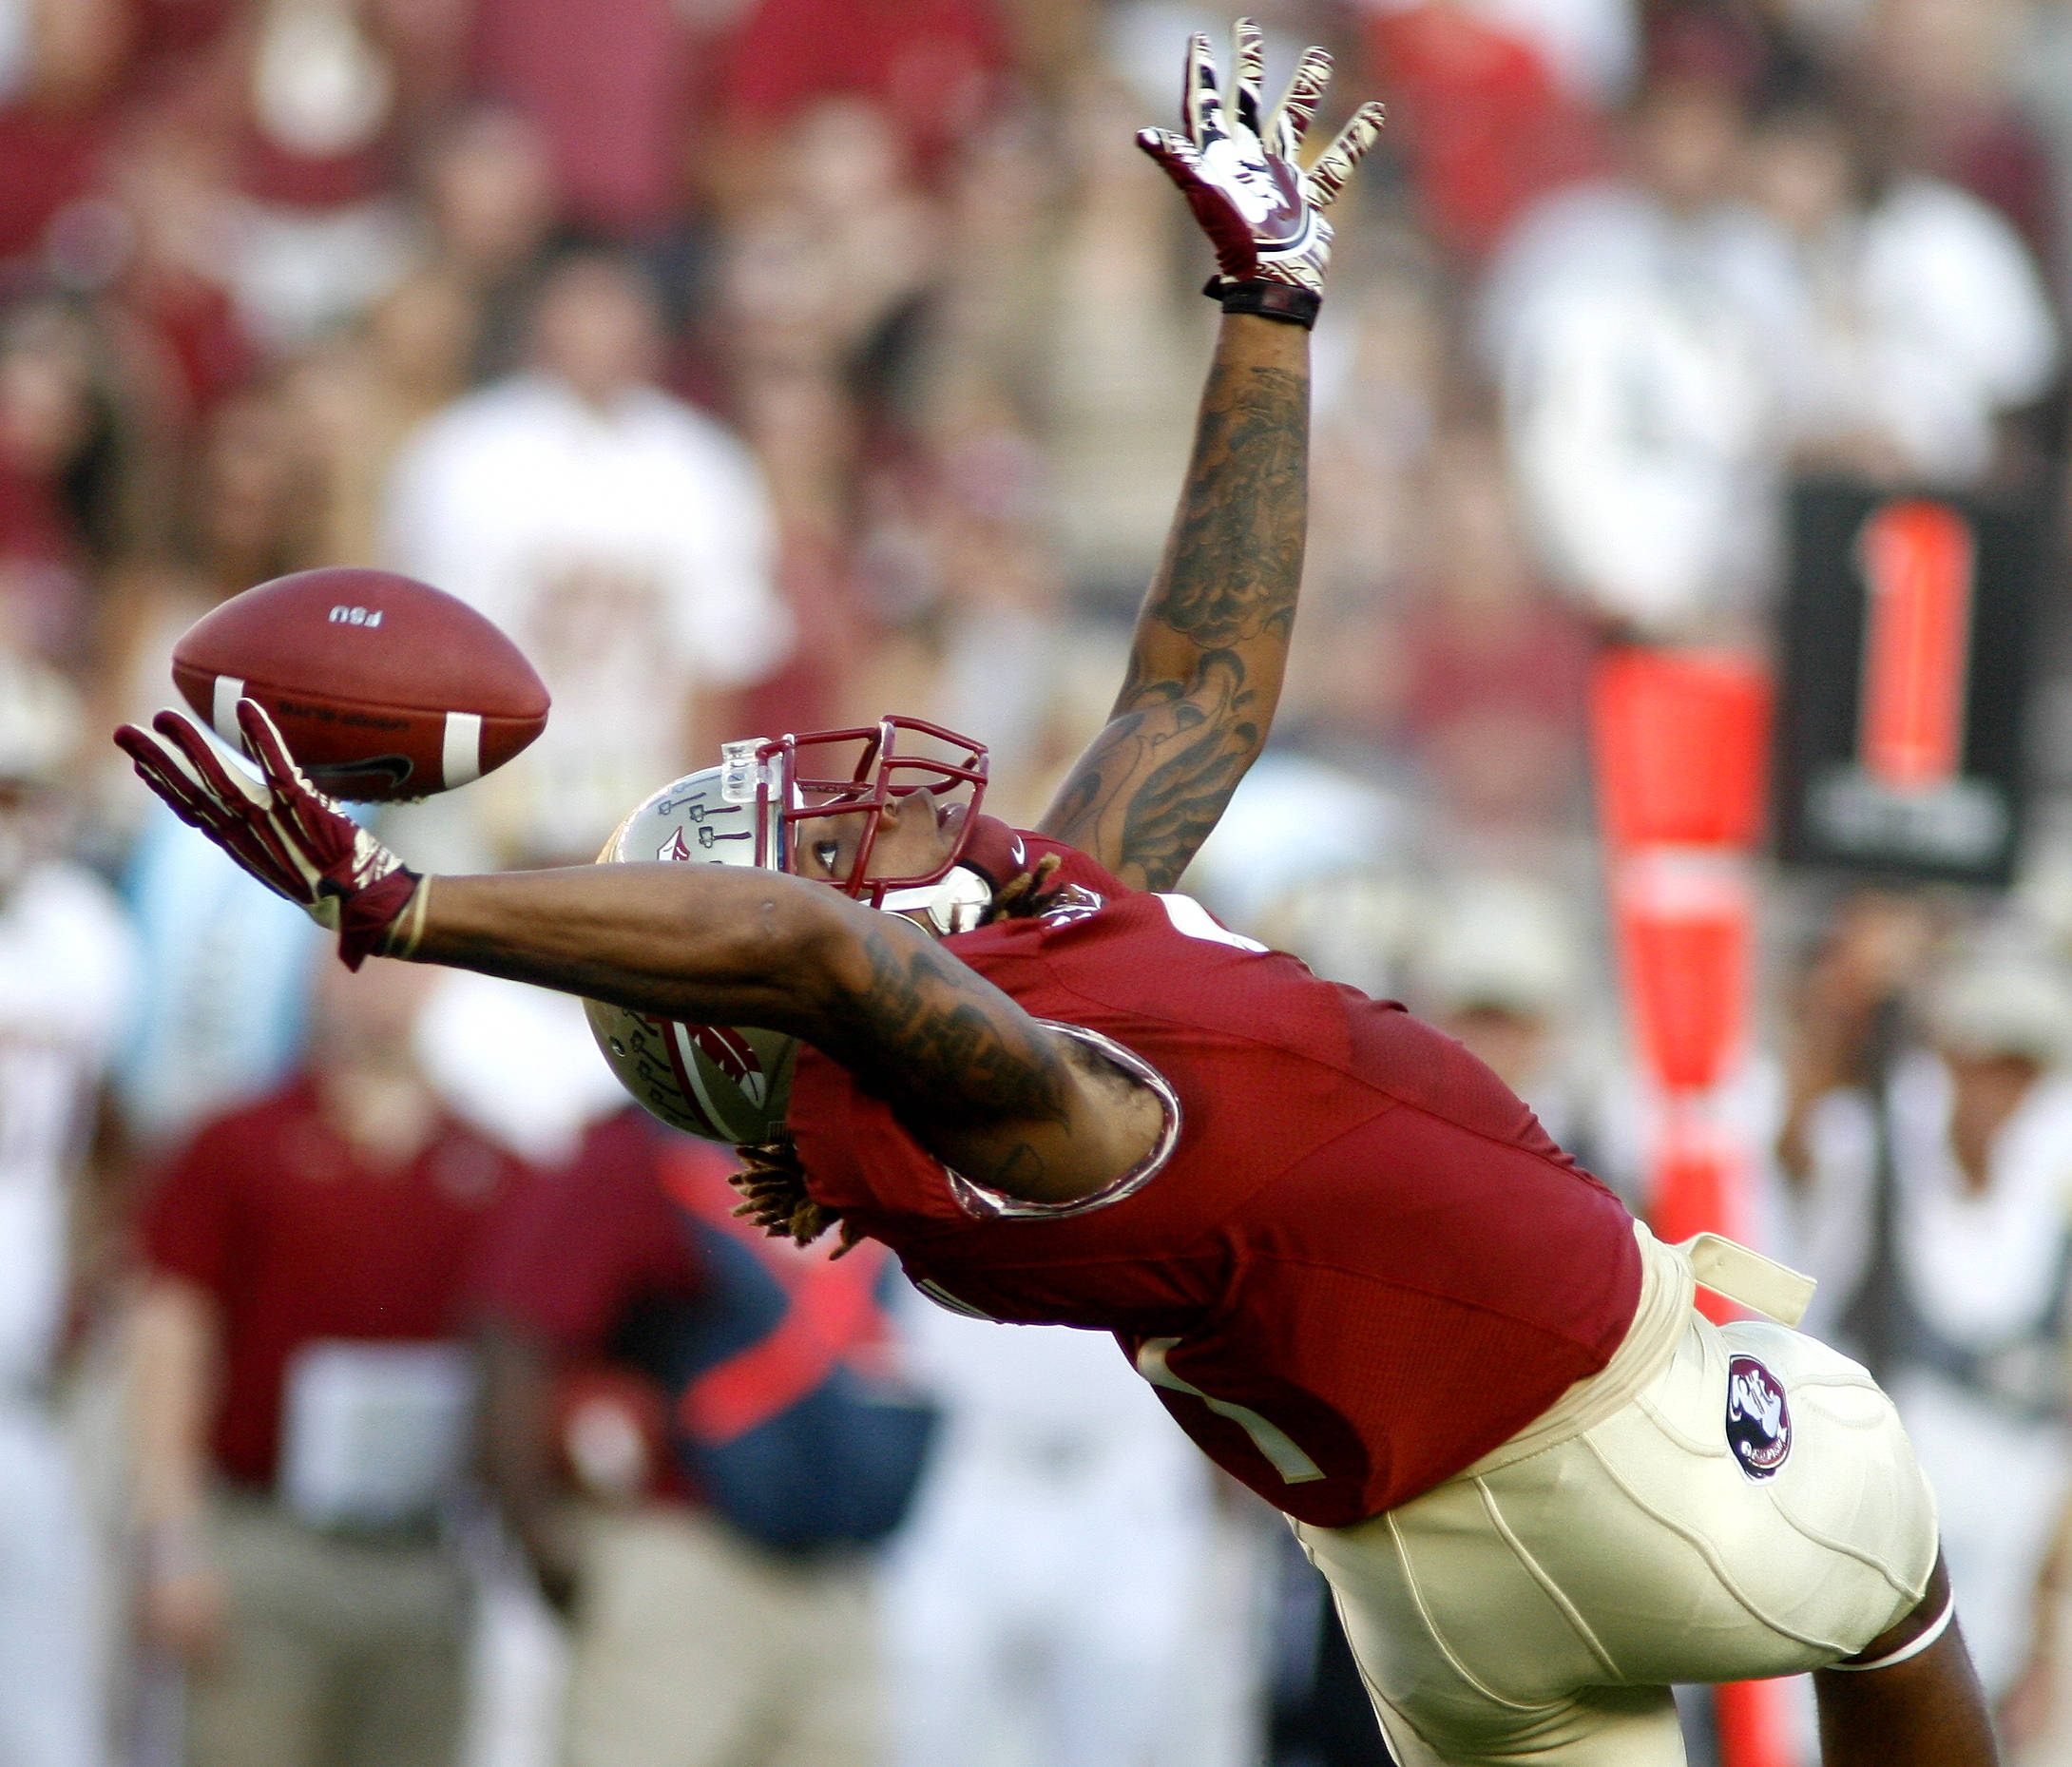 Florida State wide receiver Kelvin Benjamin (1) extends backwards as he attempts to catch a pass during the first quarter. (AP Photo/Phil Sears)